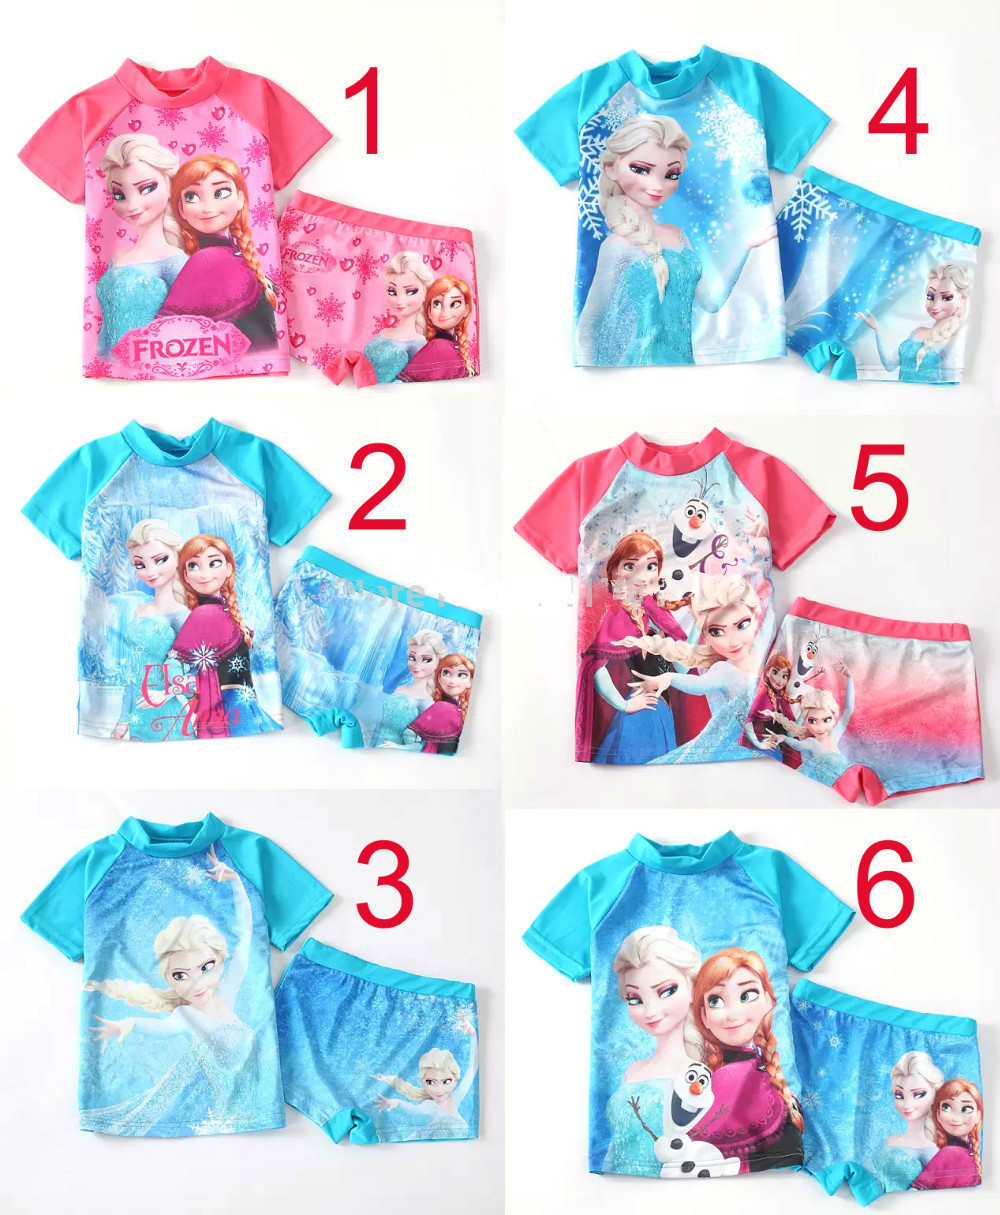 free DHL 20sets/lot anna and elsa two pieces rash guard kids short sleeve swimsuit girls sun protection anti-uv Surfing clothes